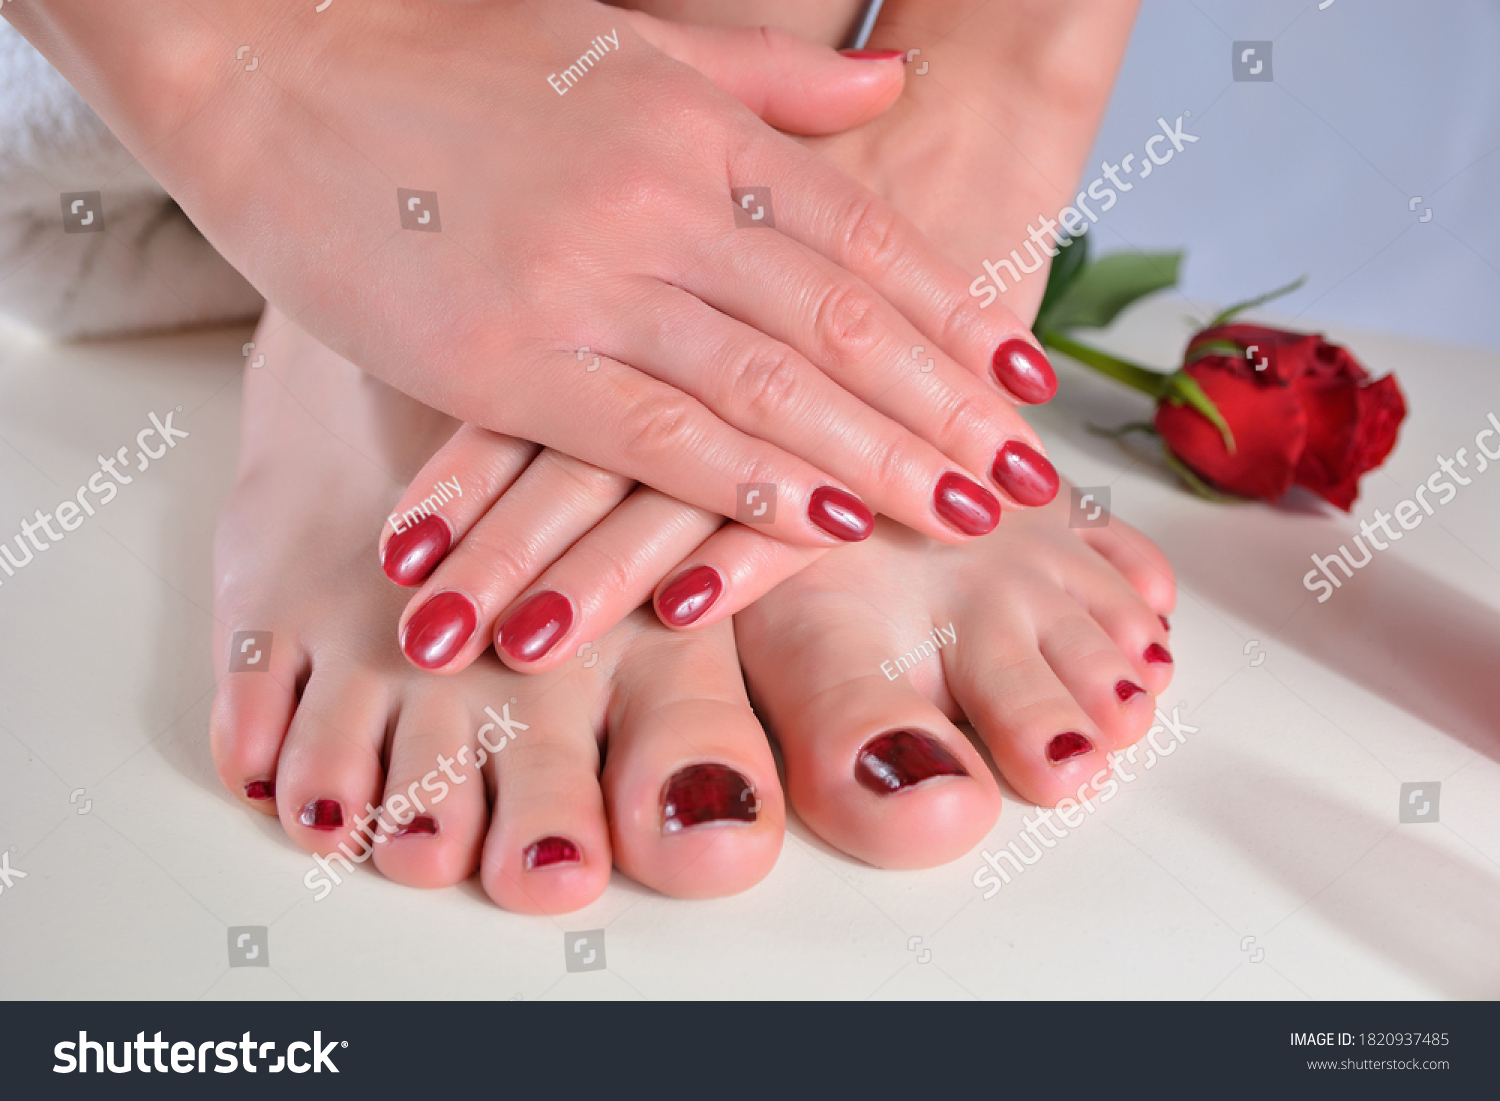 Woman feet and hands with dark red nails polish color on a white desk in a beauty salon. Pedicure and manicure concept